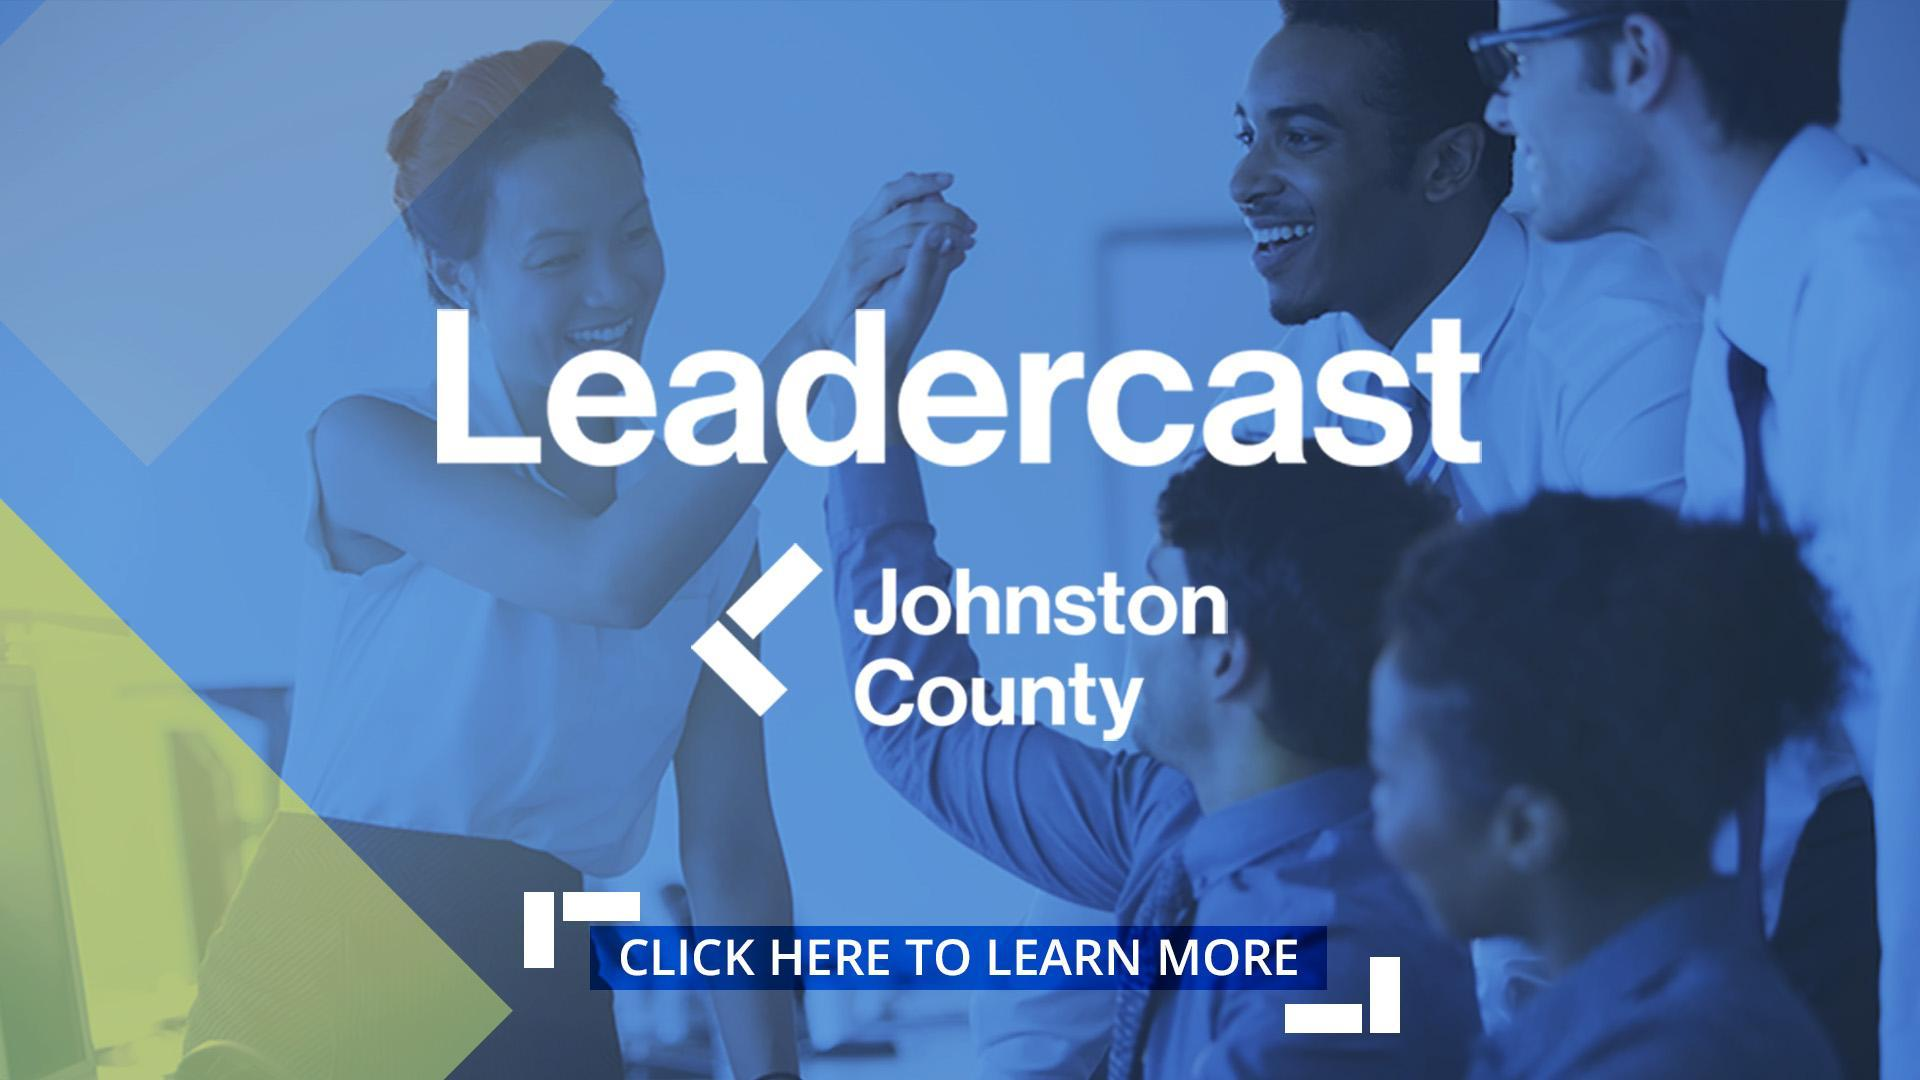 Leadercast Johnston County. Click here to learn more.